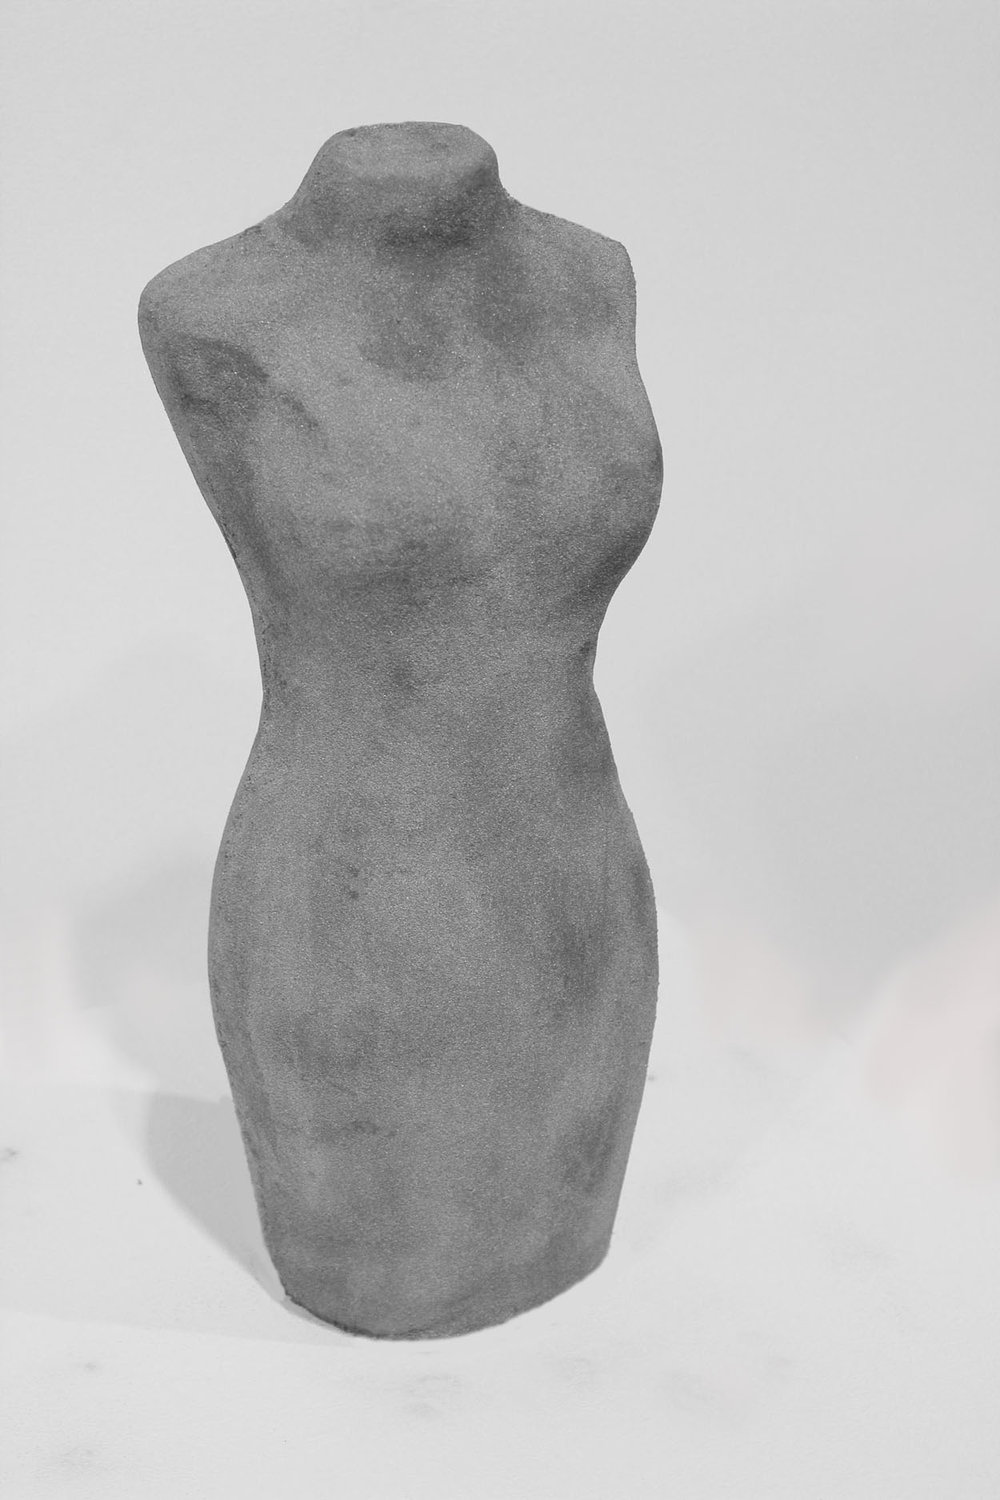 Laura Phelps_ Rogers, Suggestive of Form, Cast Iron.Dimensions variable.jpg